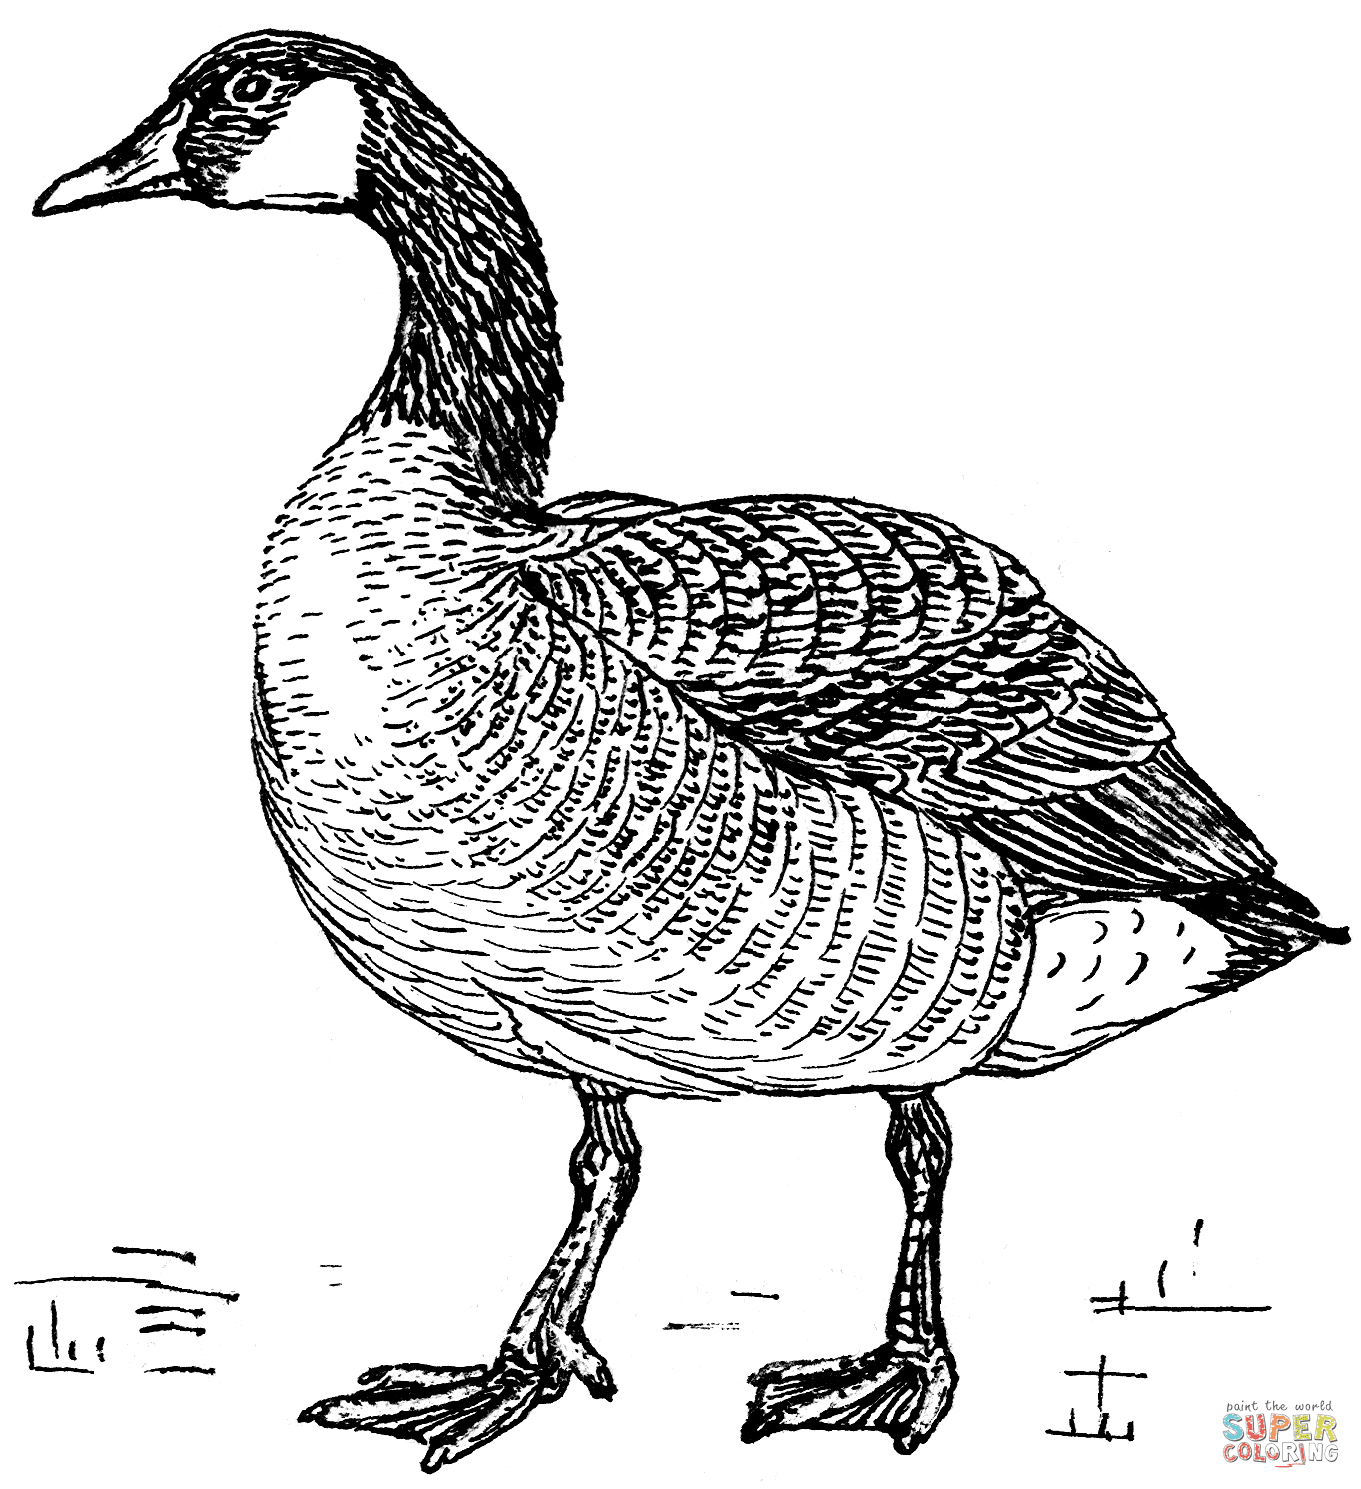 Canada Goose coloring page | Free Printable Coloring Pages